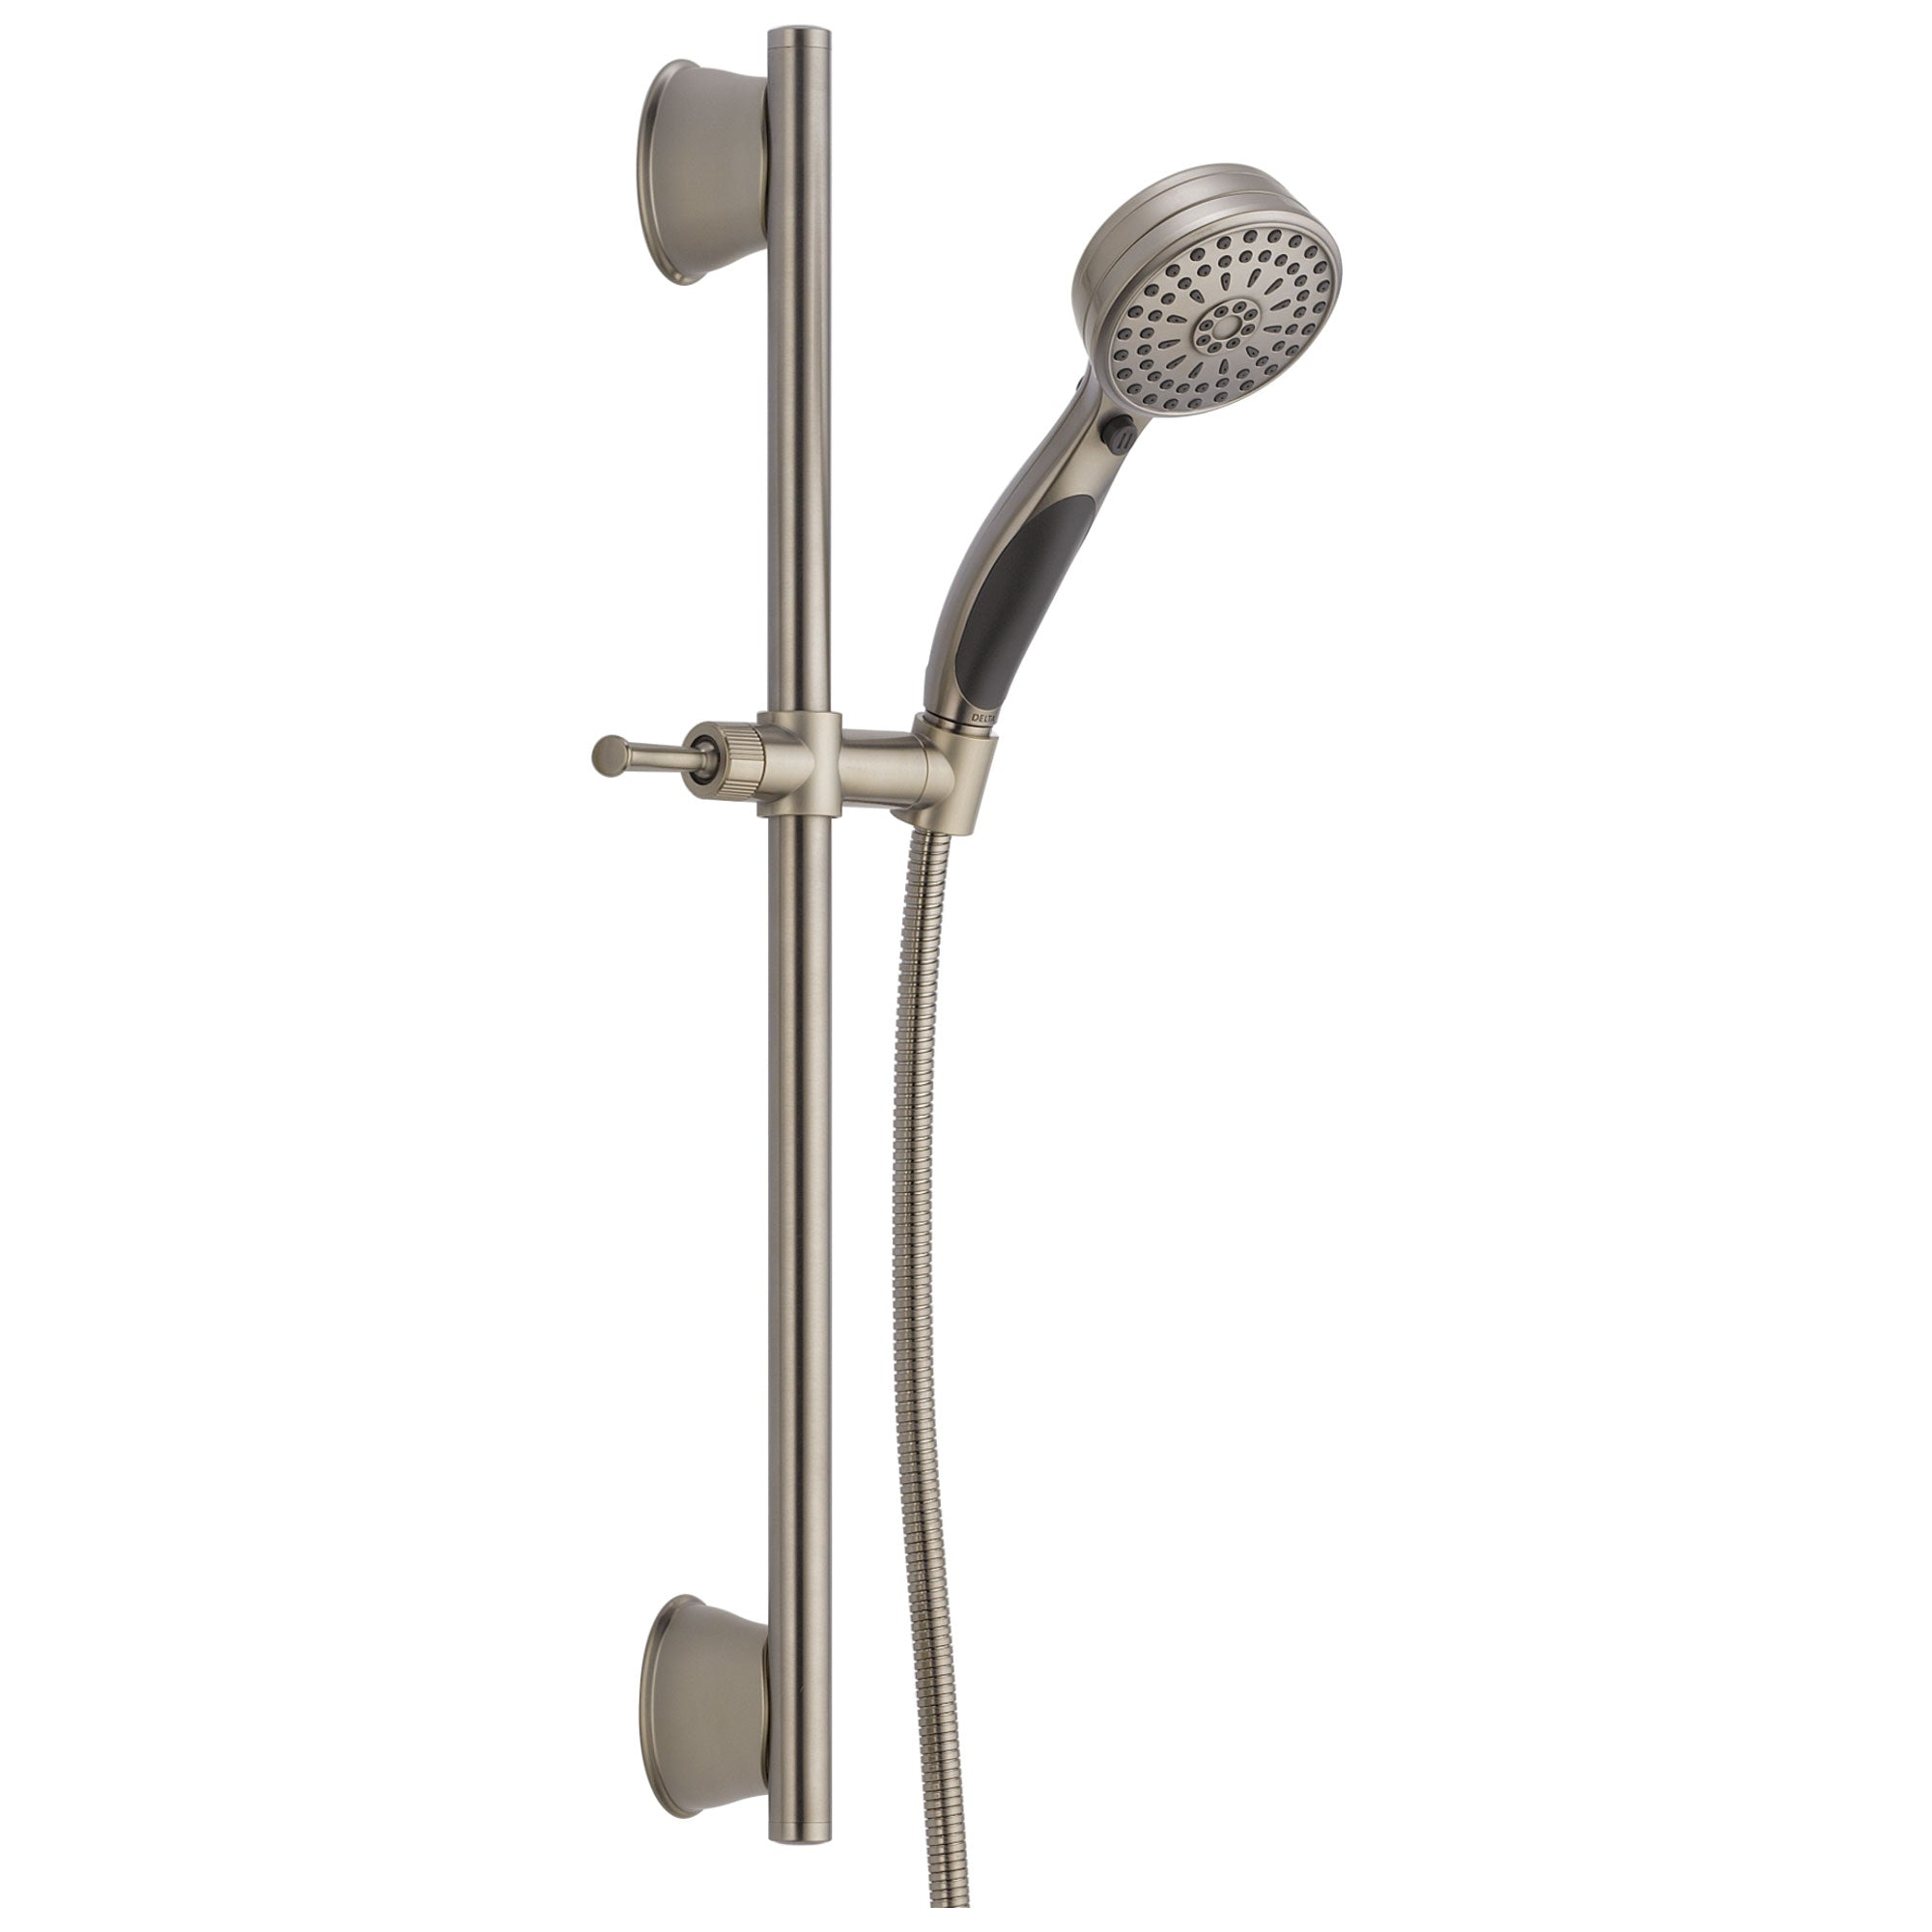 Delta Universal Showering Components Collection Stainless Steel Finish ActivTouch Hand Held Shower with Slidebar and Hose D51549SS